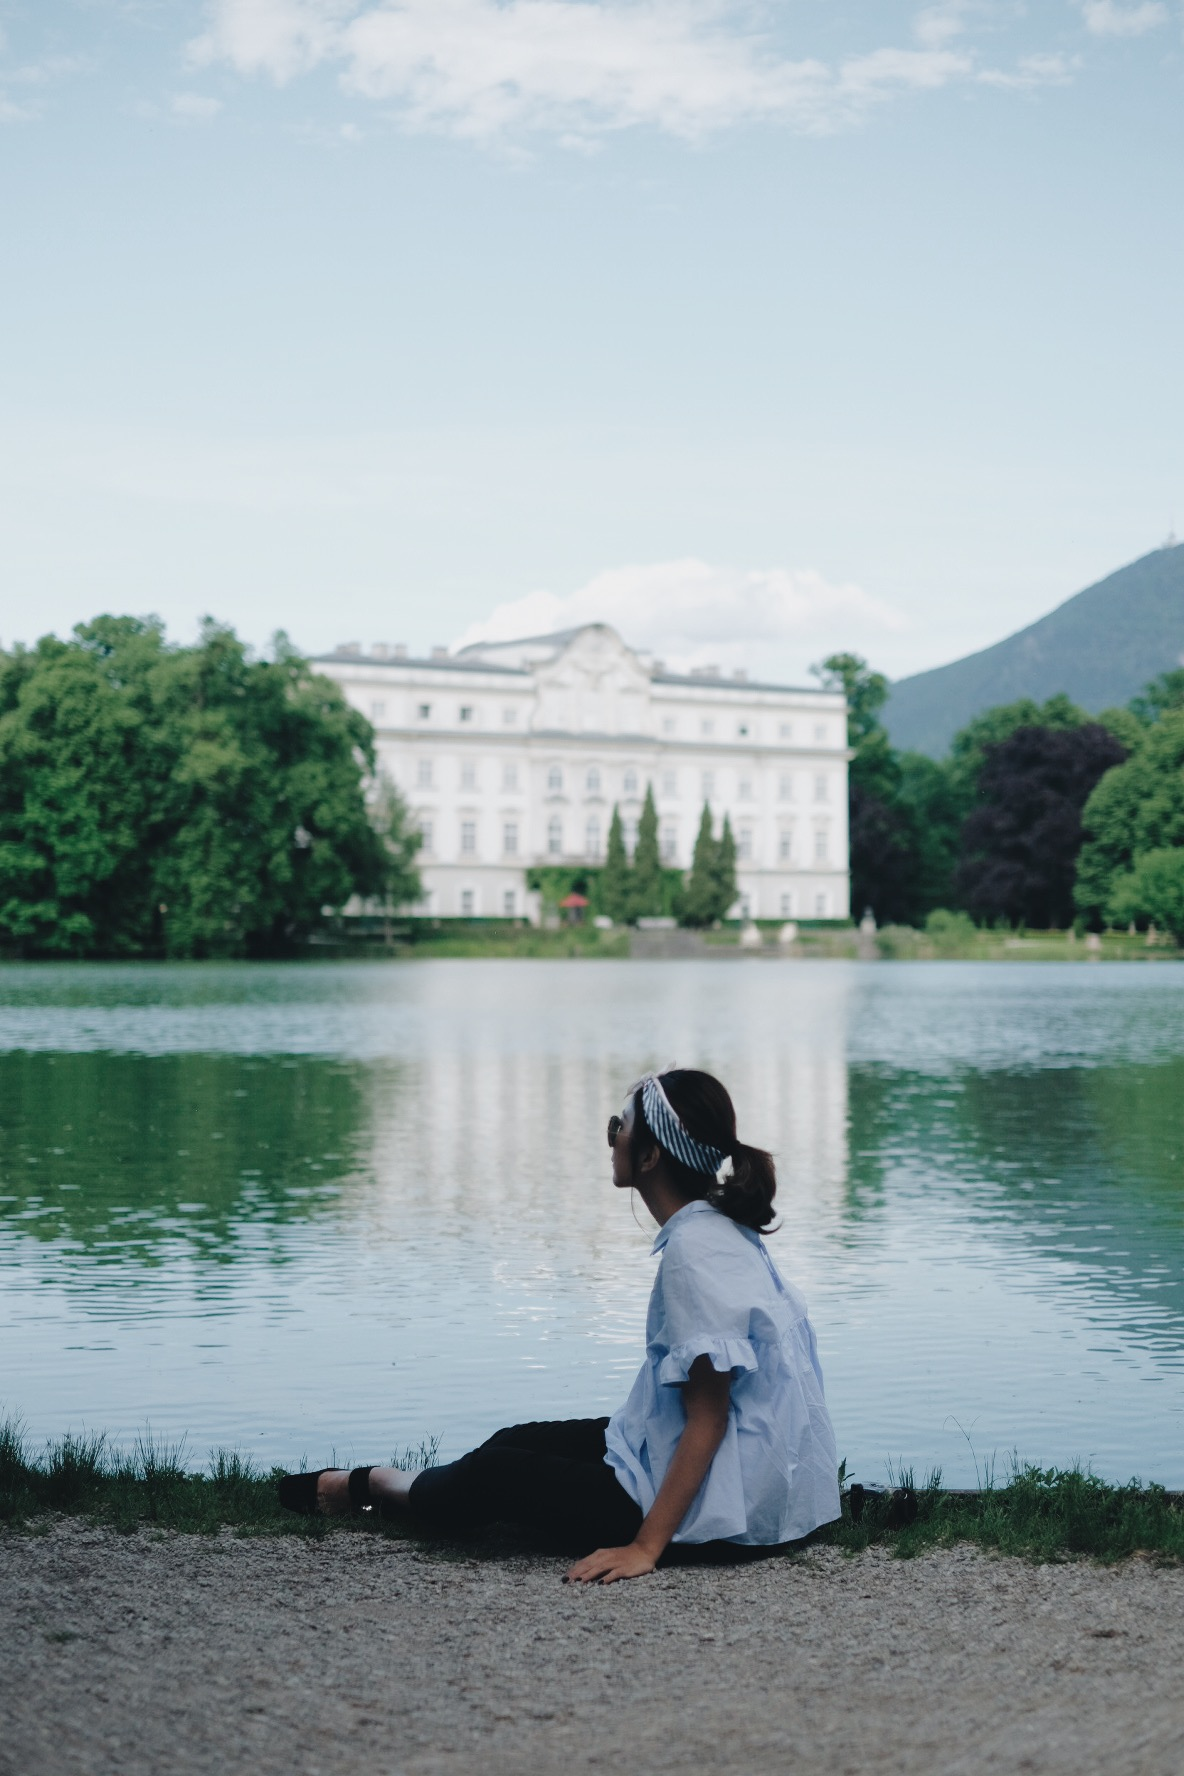 A view by the lake in Vienna, Austria.